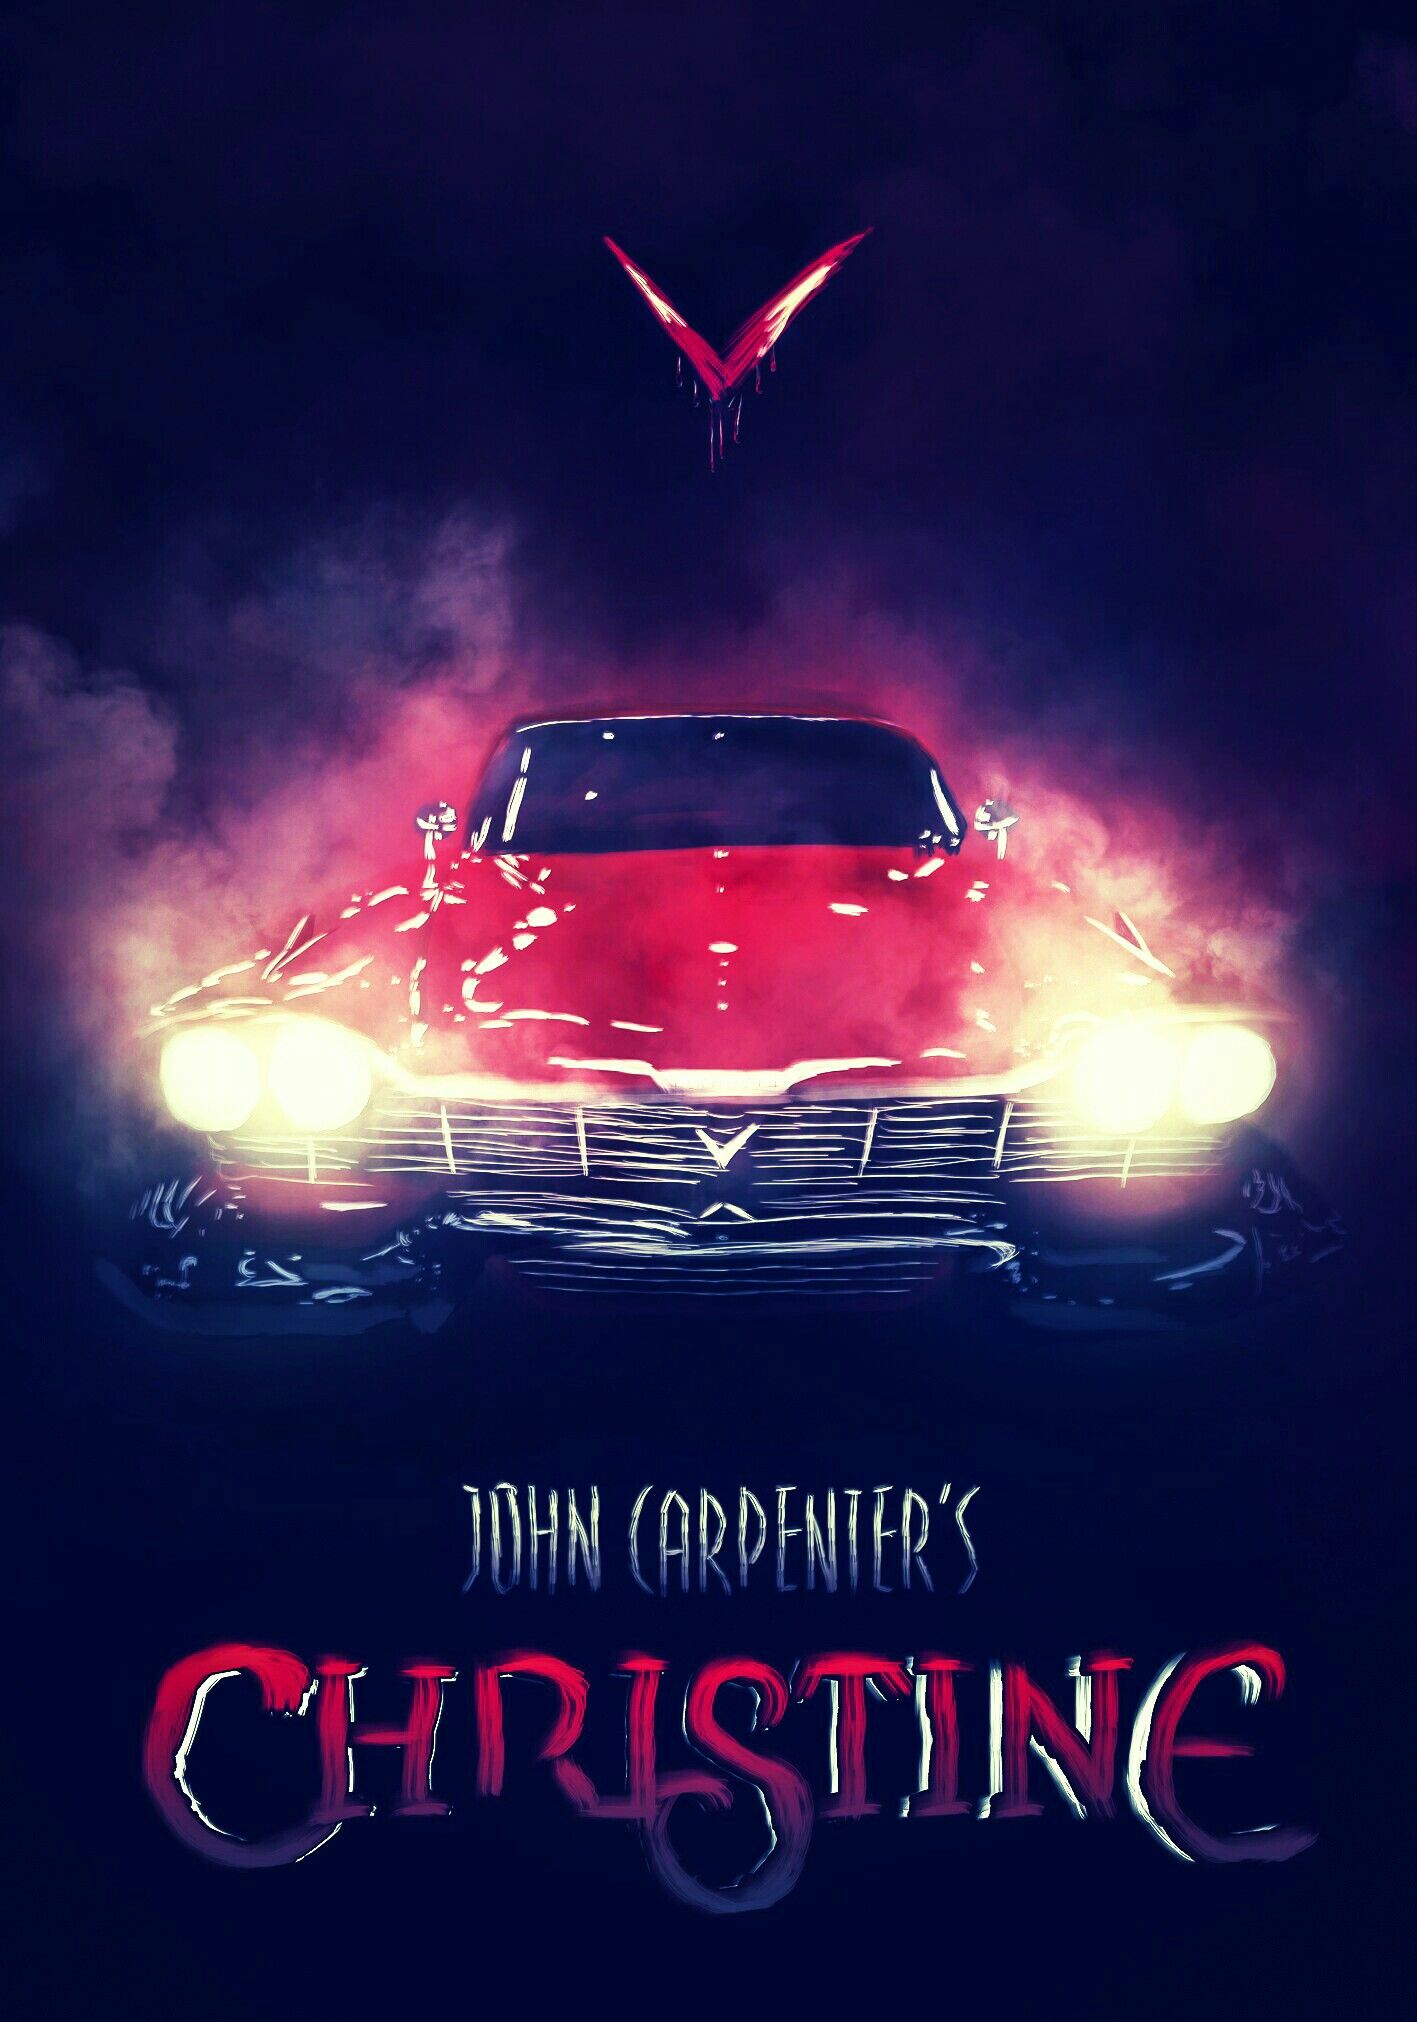 Christine horror posters film posters art cool posters